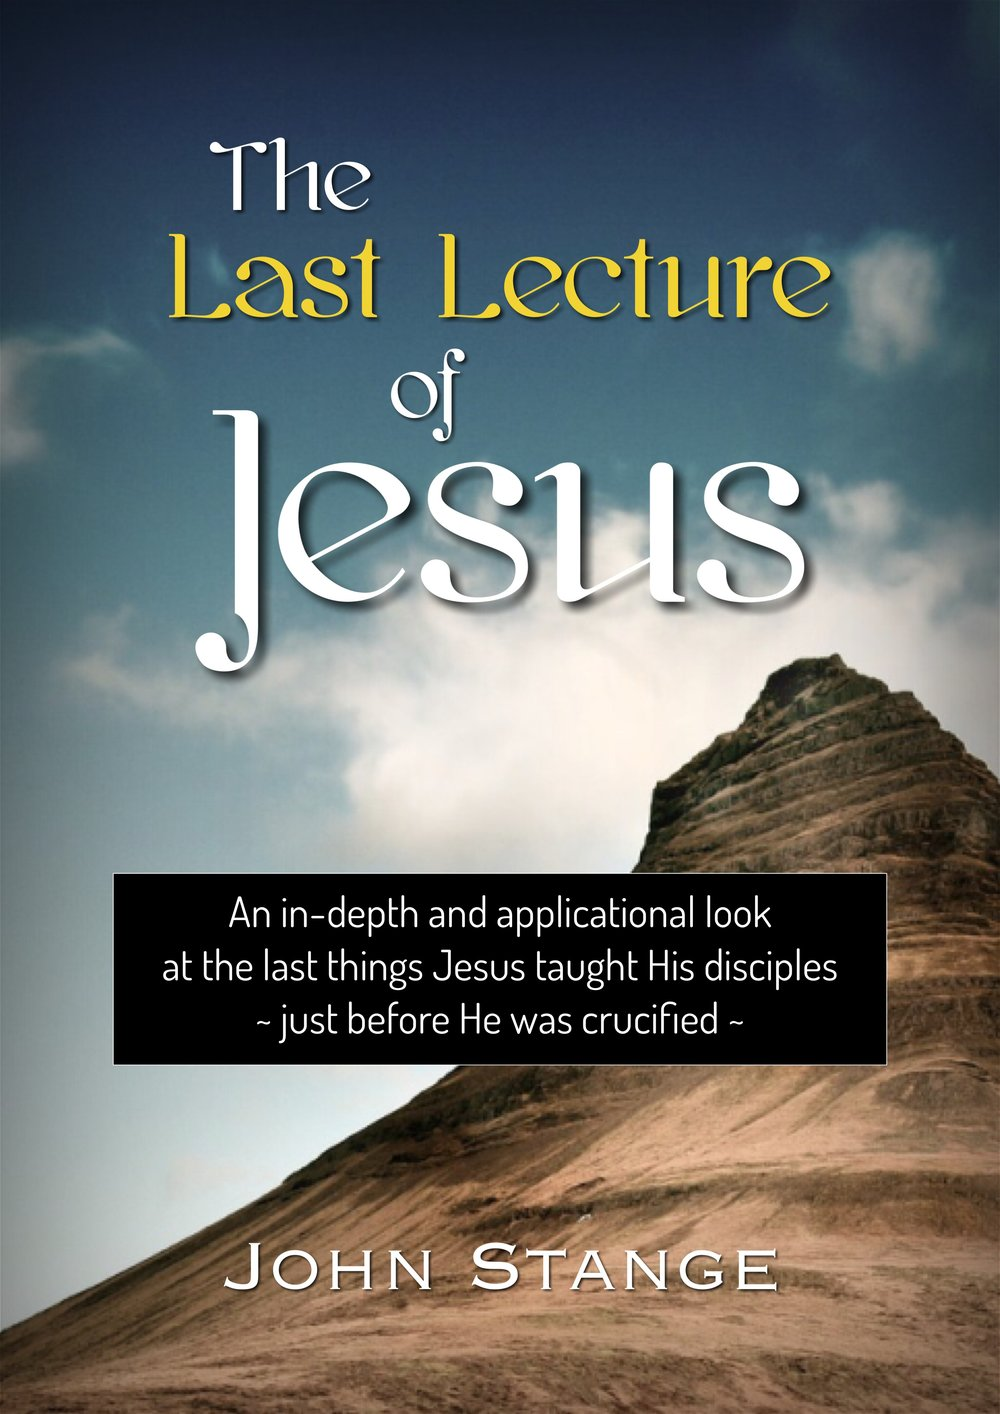 The Last Lecture of Jesus.JPG